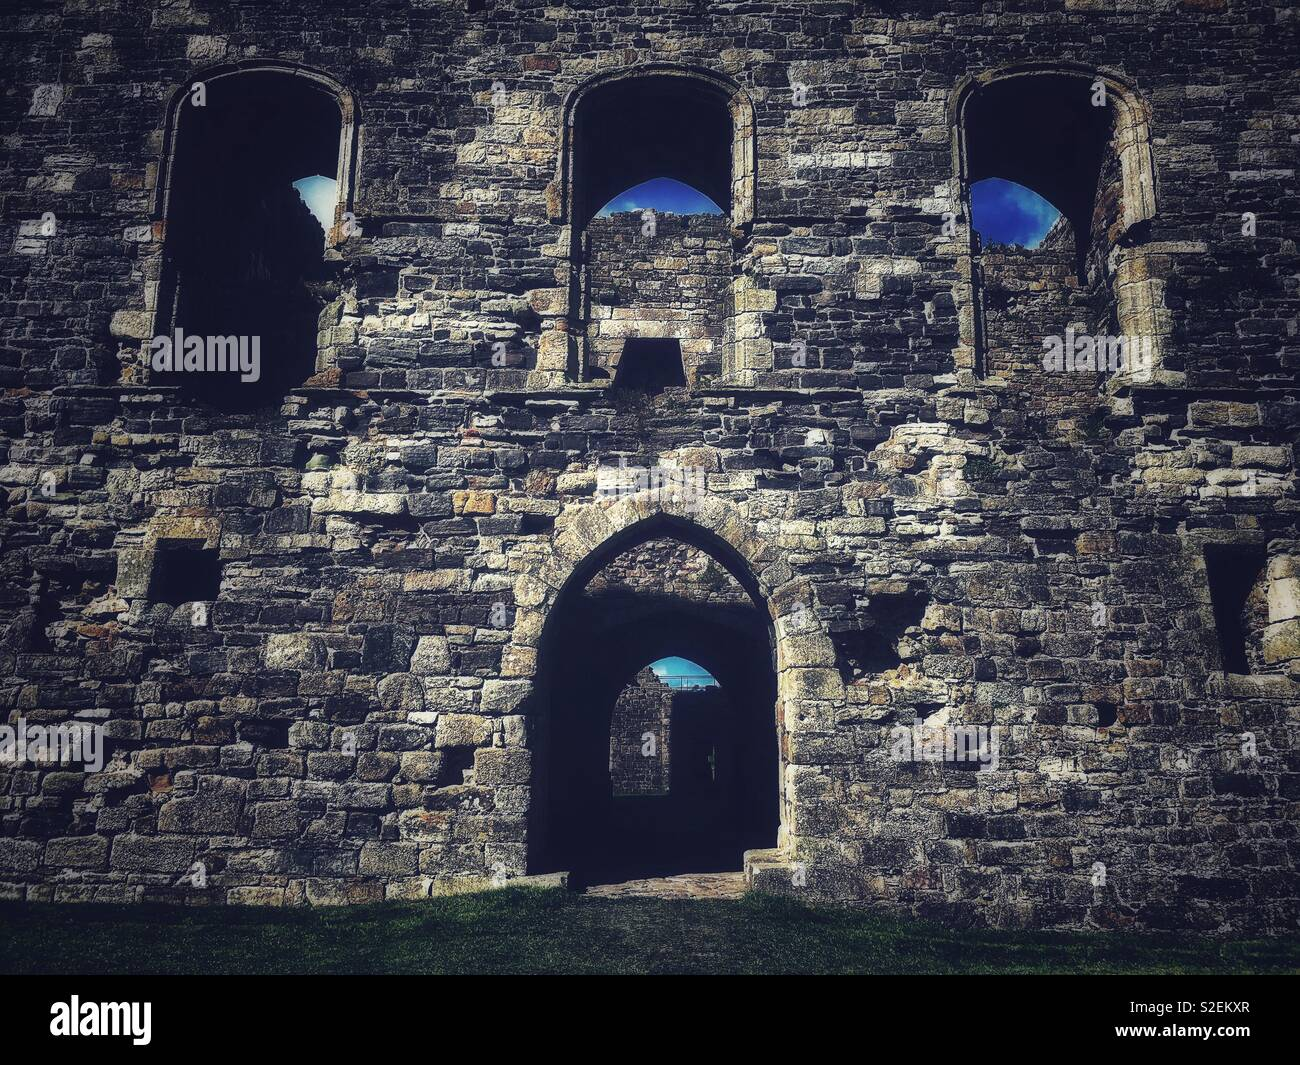 Medieval castle in Beaumaris, Anglesey - Stock Image